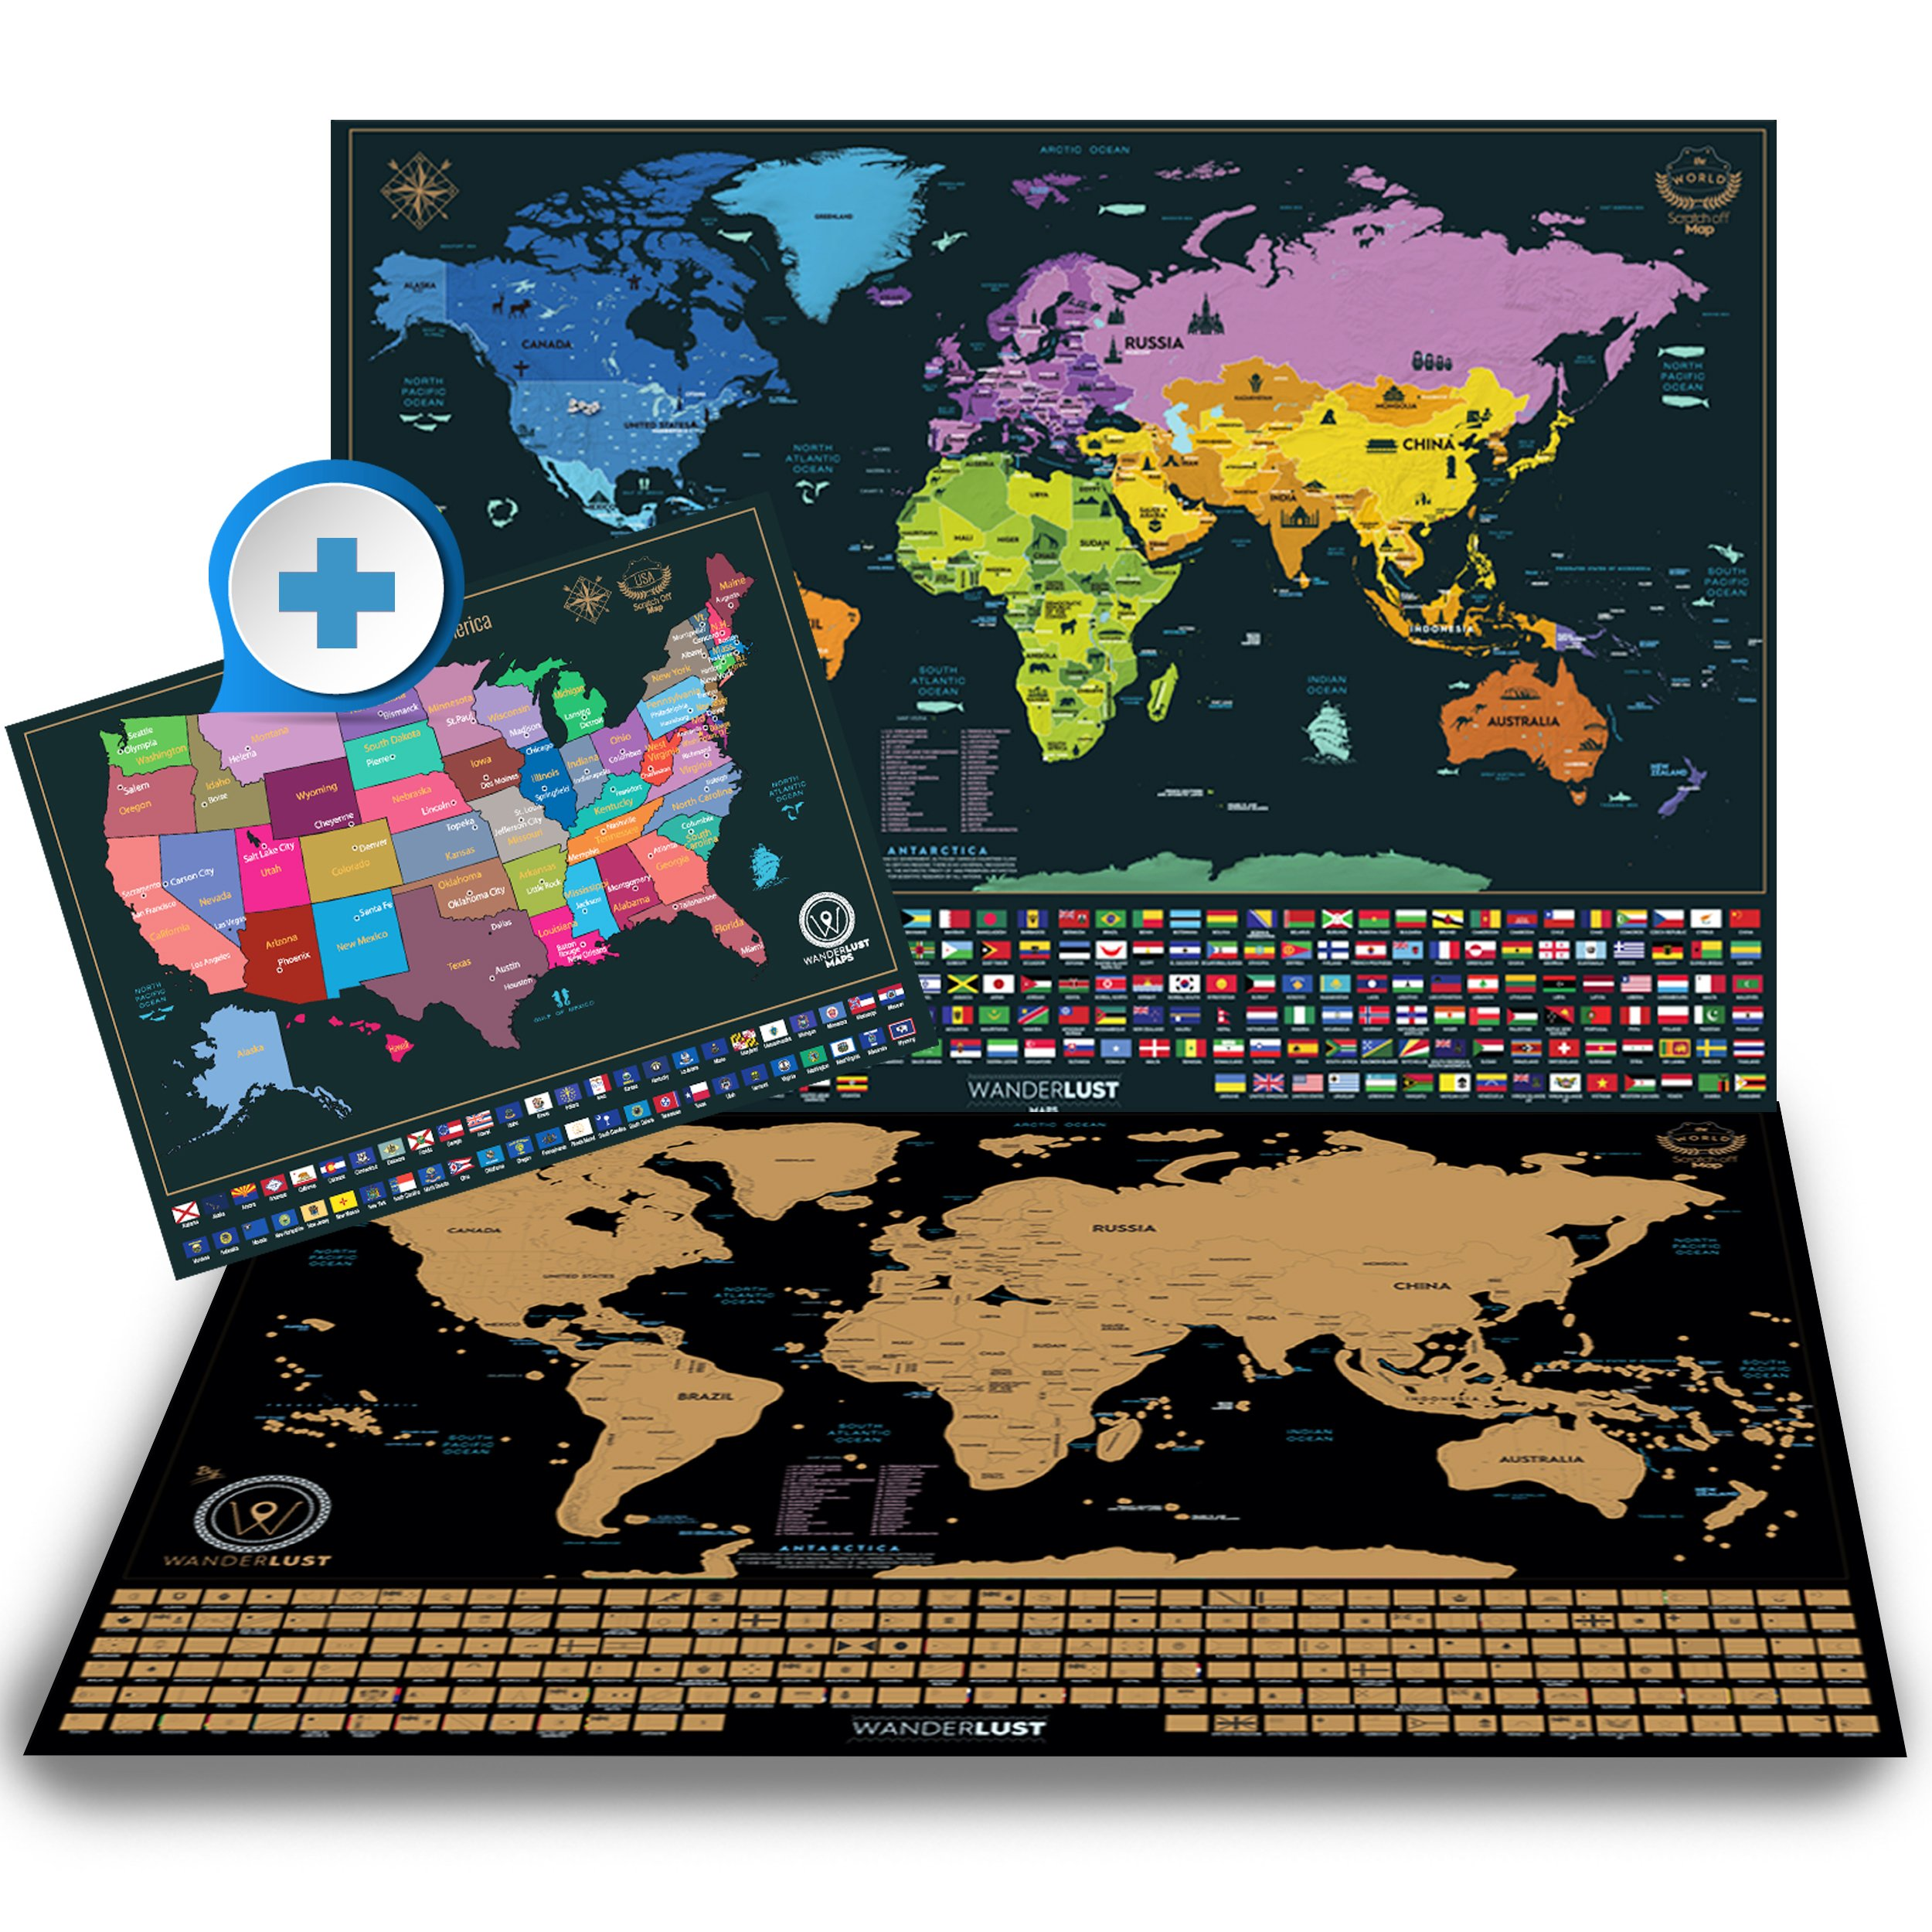 Scratch Off World Map + Premium Scratch Off USA Map - Deluxe Tube Can Be Gift Messaged and Includes Precision Scratch Tool and Travel Memory Stickers, by Wanderlust Maps